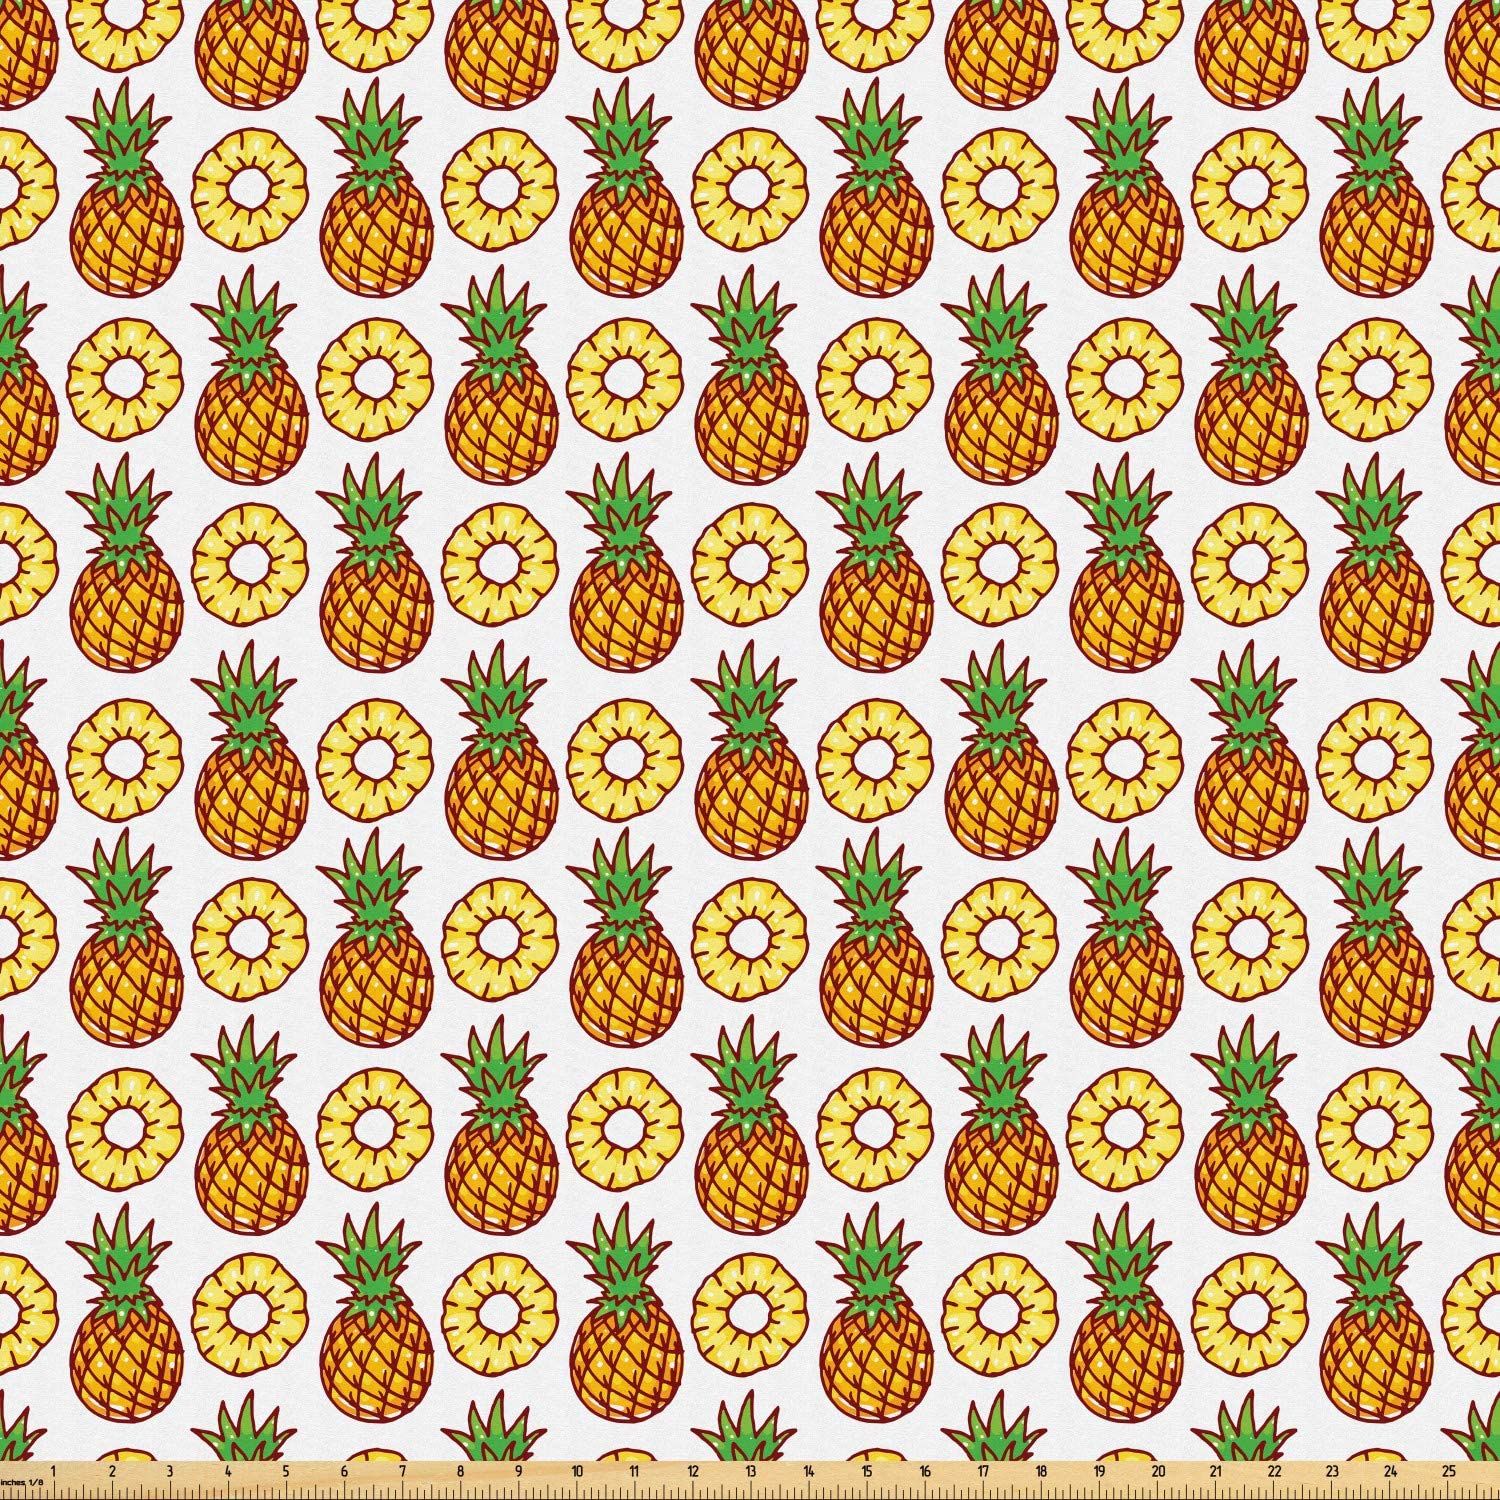 Lunarable Pineapple Fabric by The Yard, Ripe Pineapple Pattern Delicious Nutrient Vegetarian Vegan Illustration, Microfiber Fabric for Arts and Crafts Textiles & Decor, 1 Yard, Cinnamon Mustard